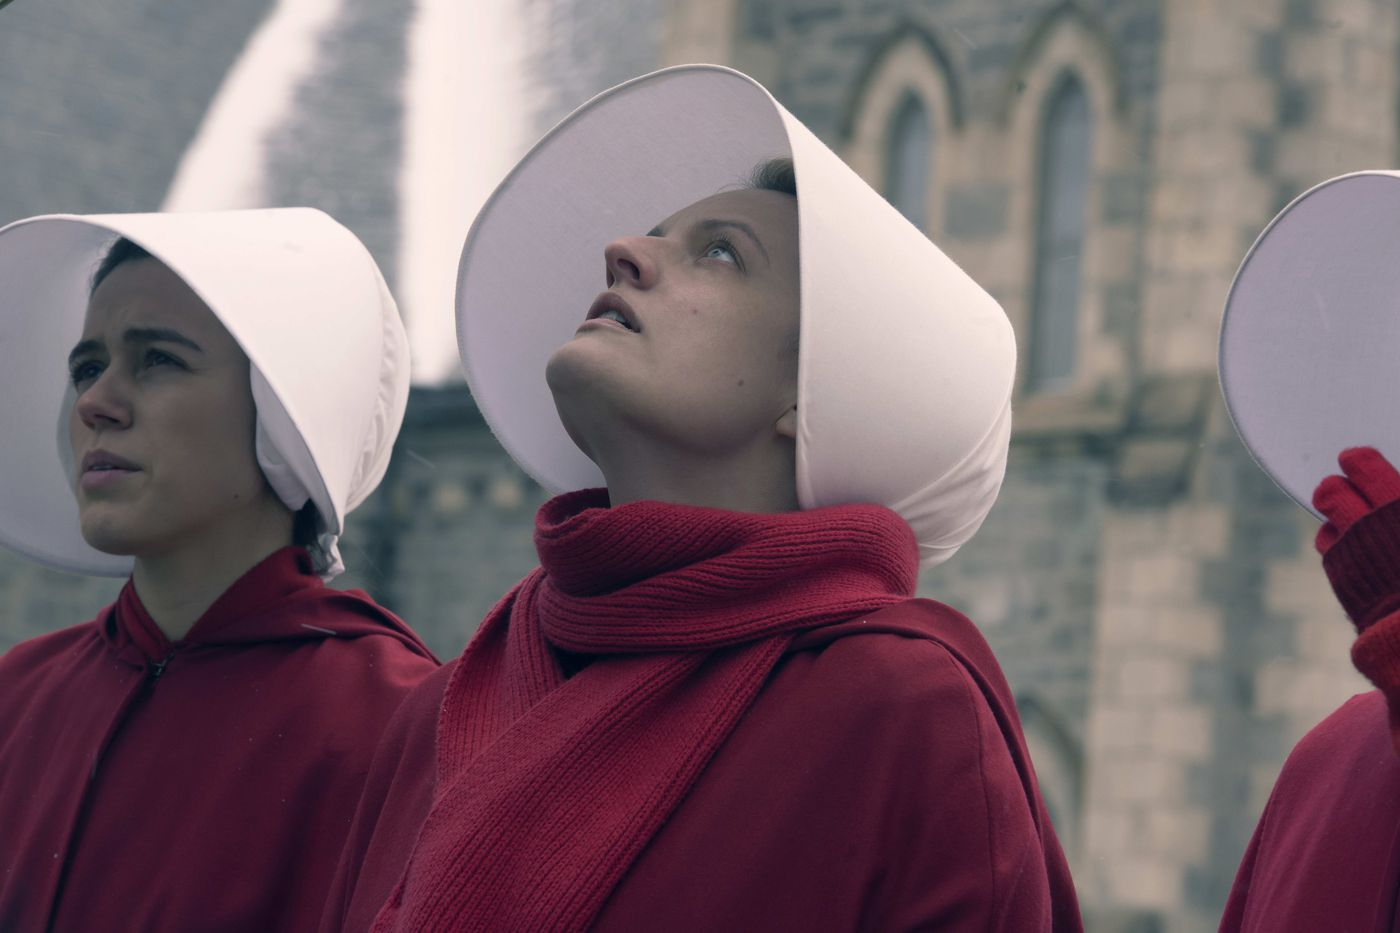 Season 3 of The Handmaid's Tale finally prioritizes